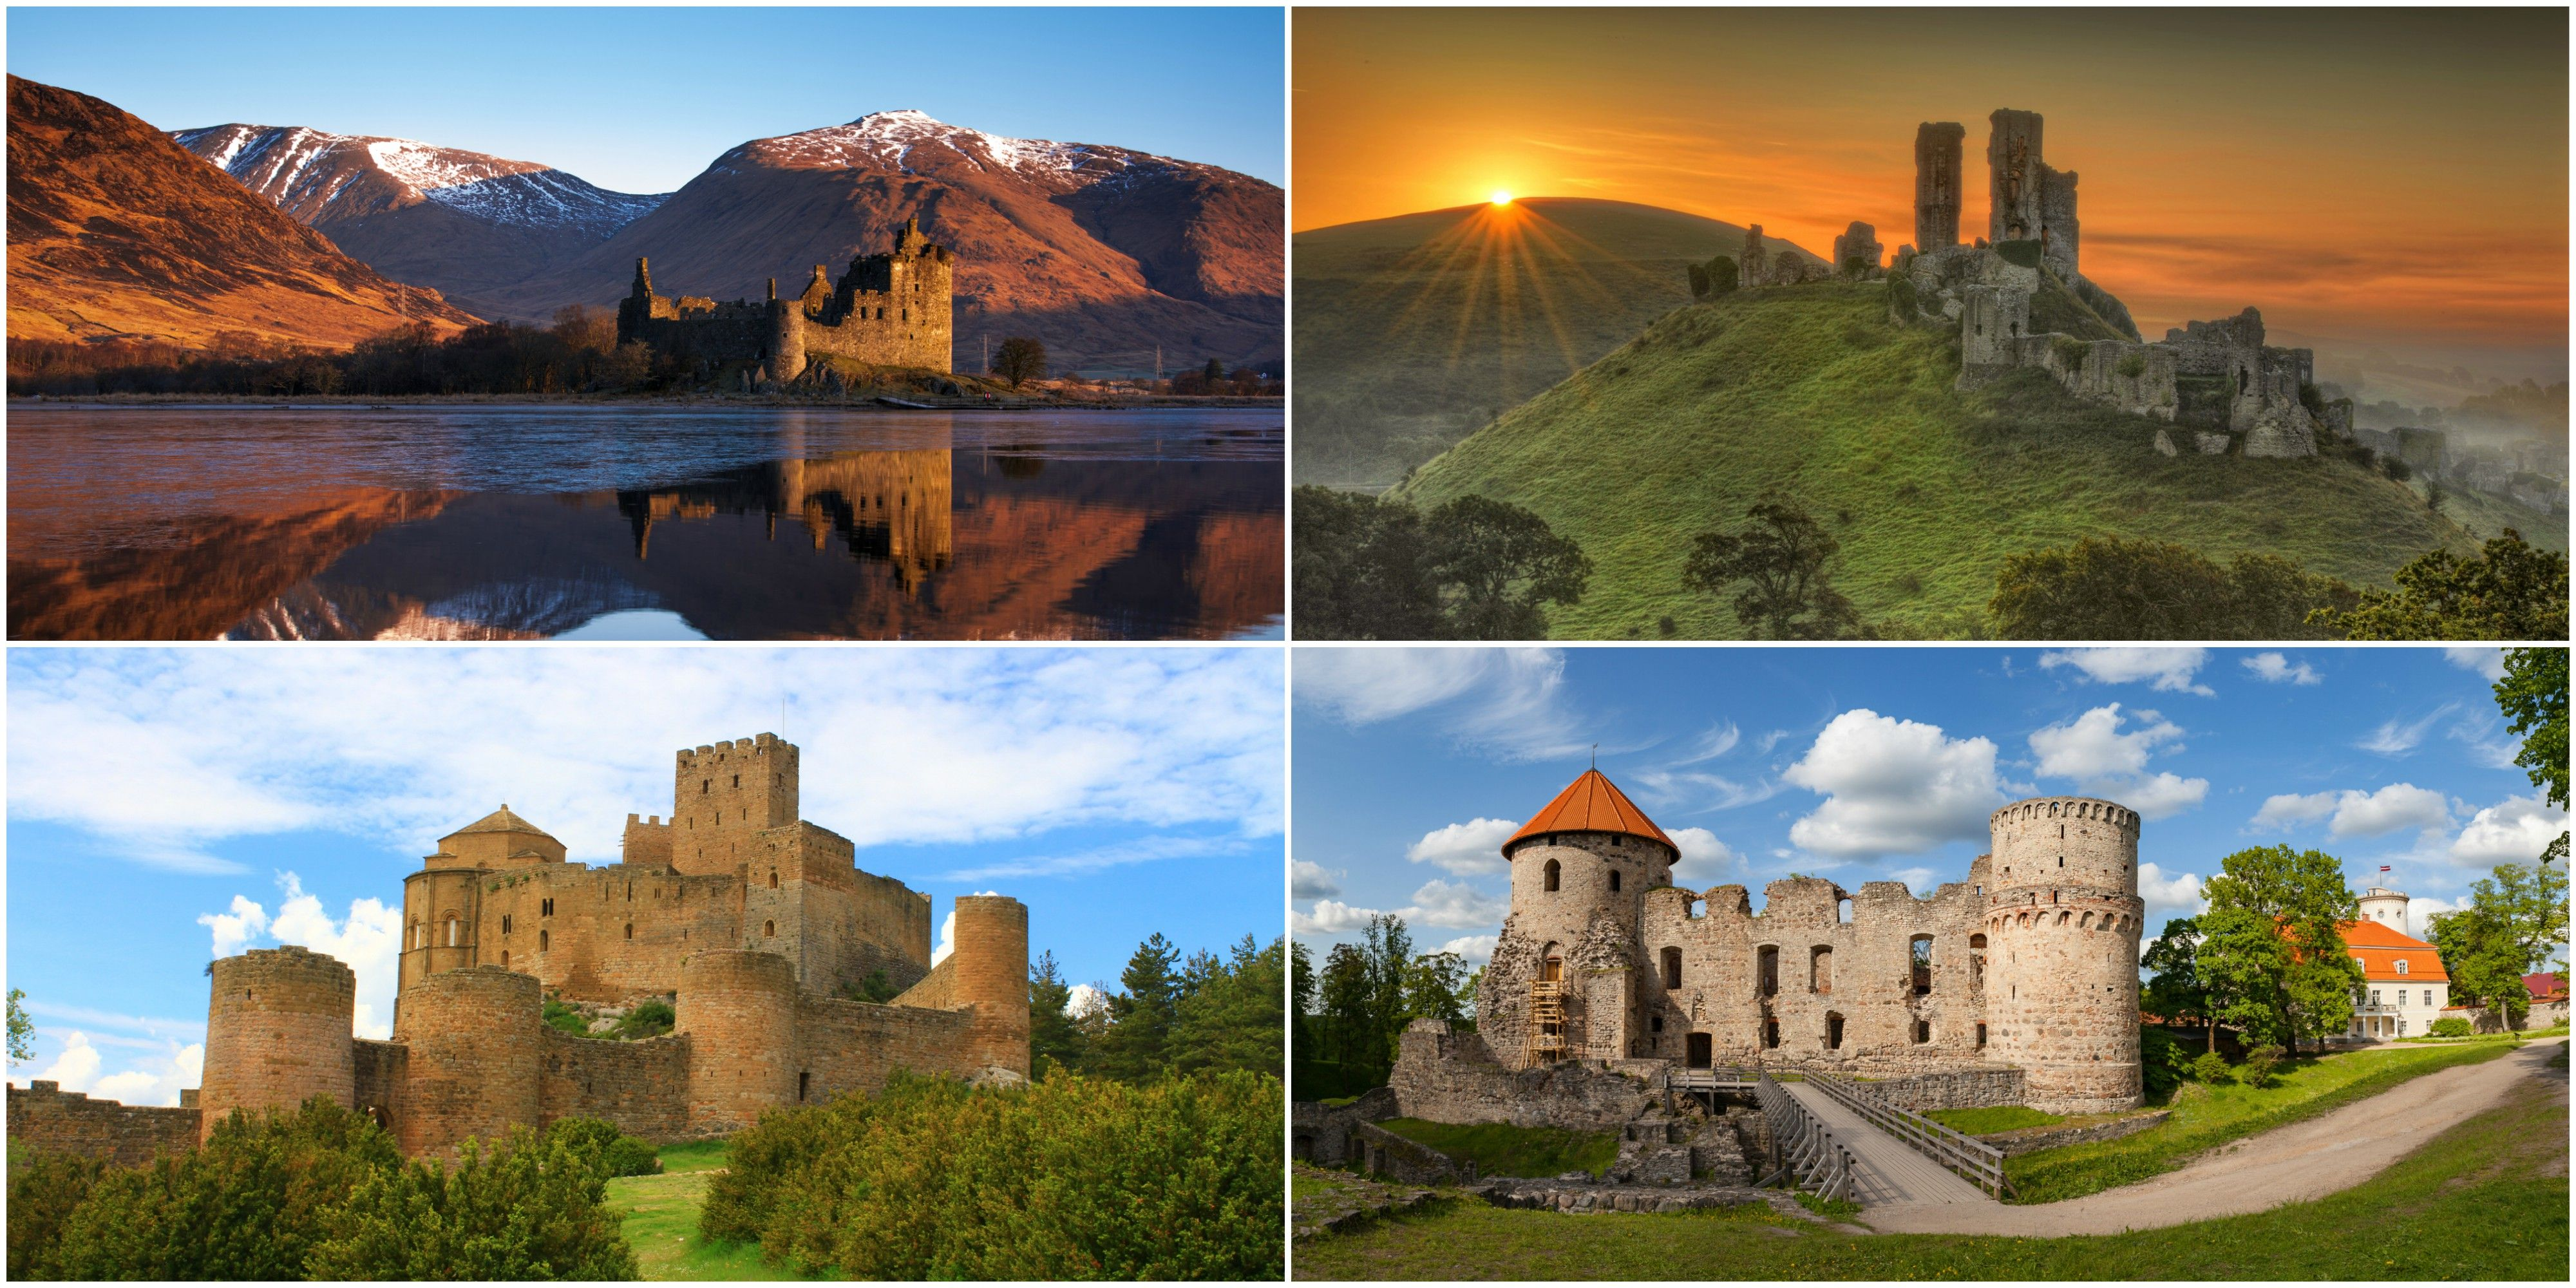 11 of the world's most beautiful abandoned castles - 11